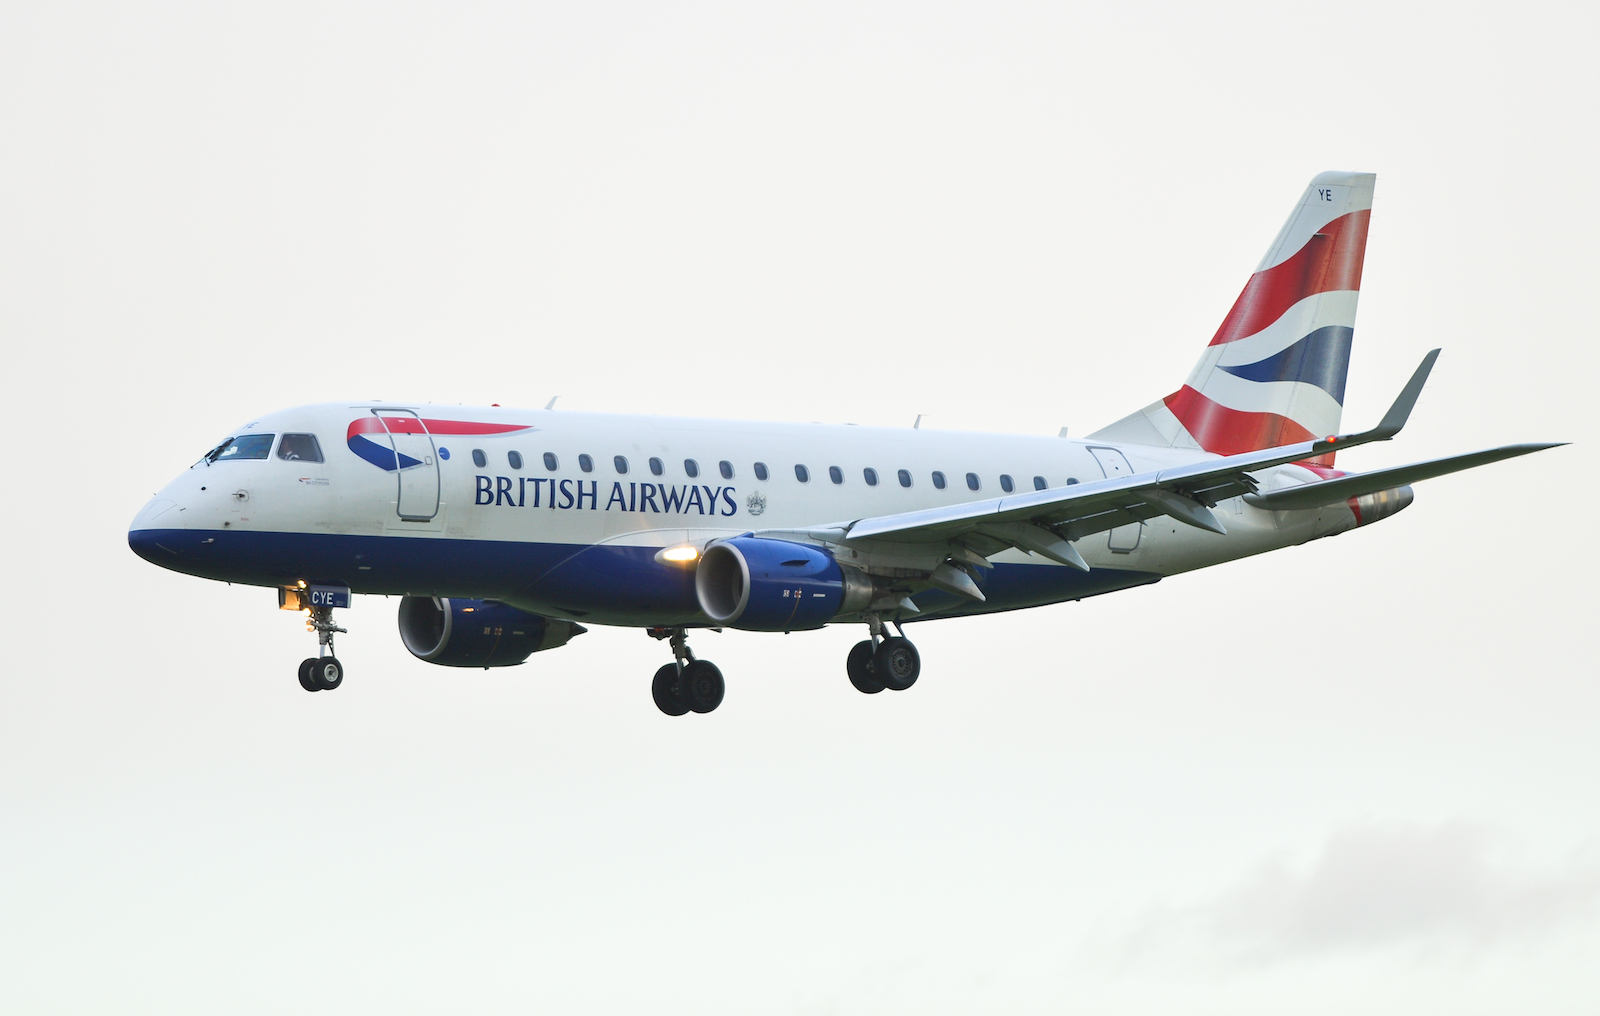 A British Airways plane is about to land on the runway at Dublin airport.